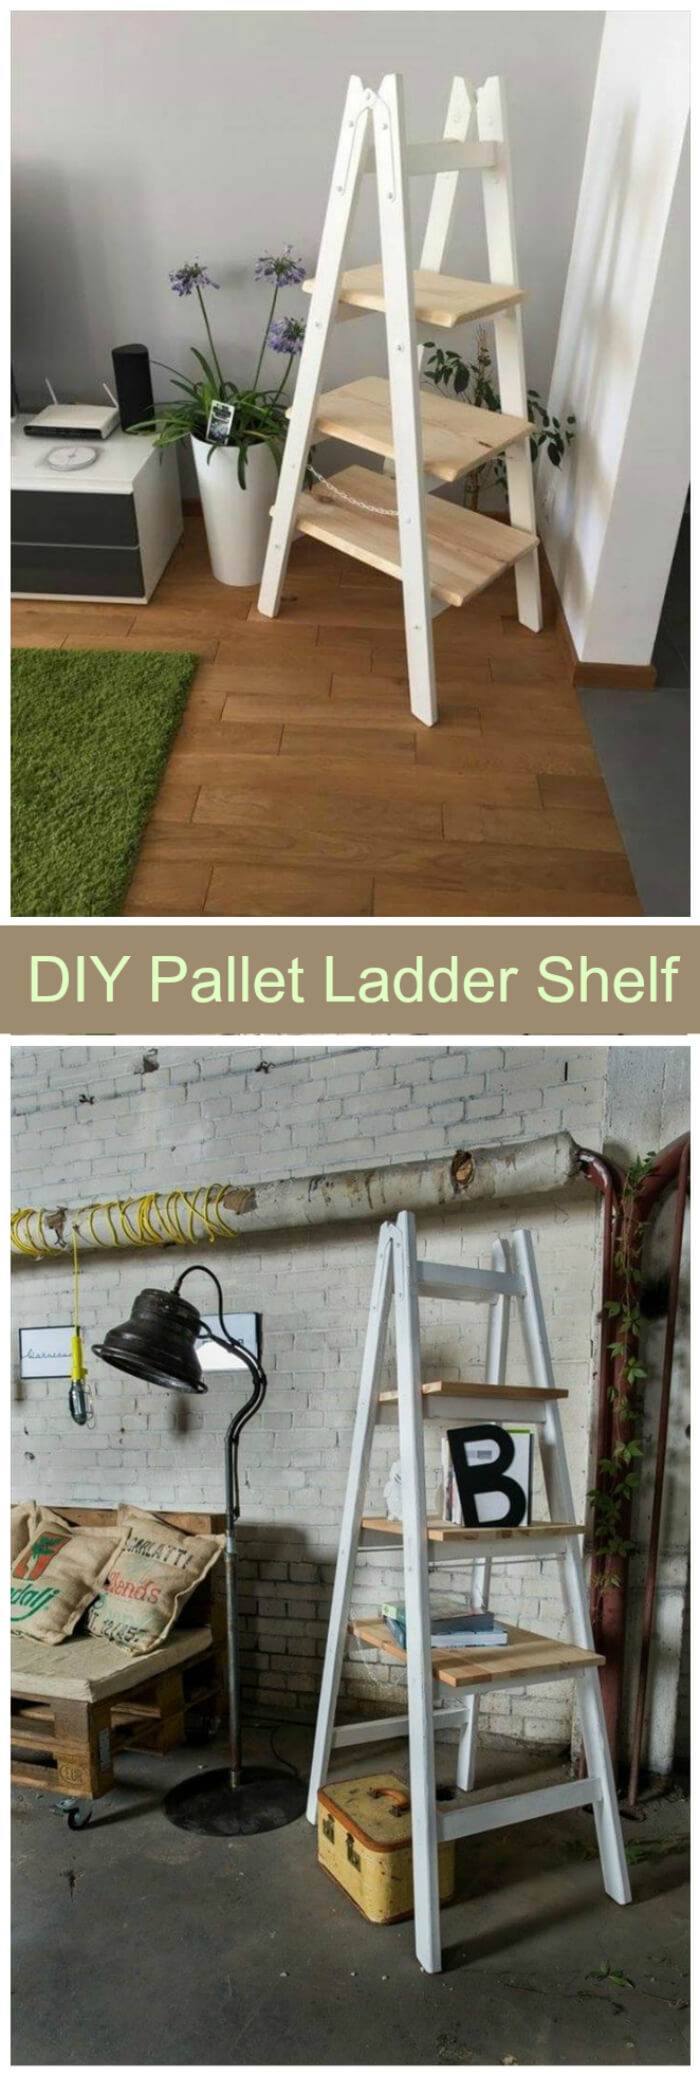 Pallet Furniture Ideas with 25 Complete DIY Projects - I ...